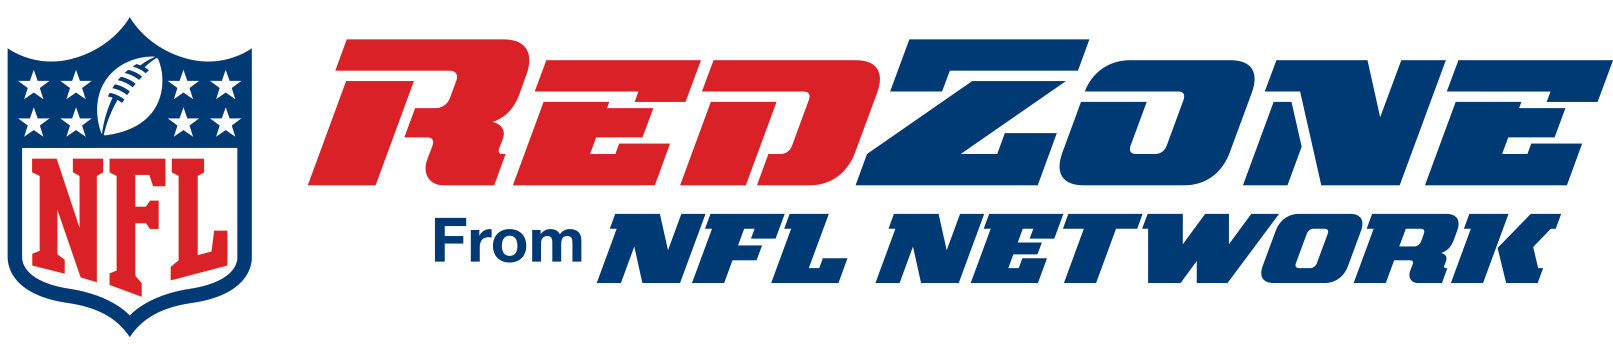 Nfl channel logo png. Sign up for redzone